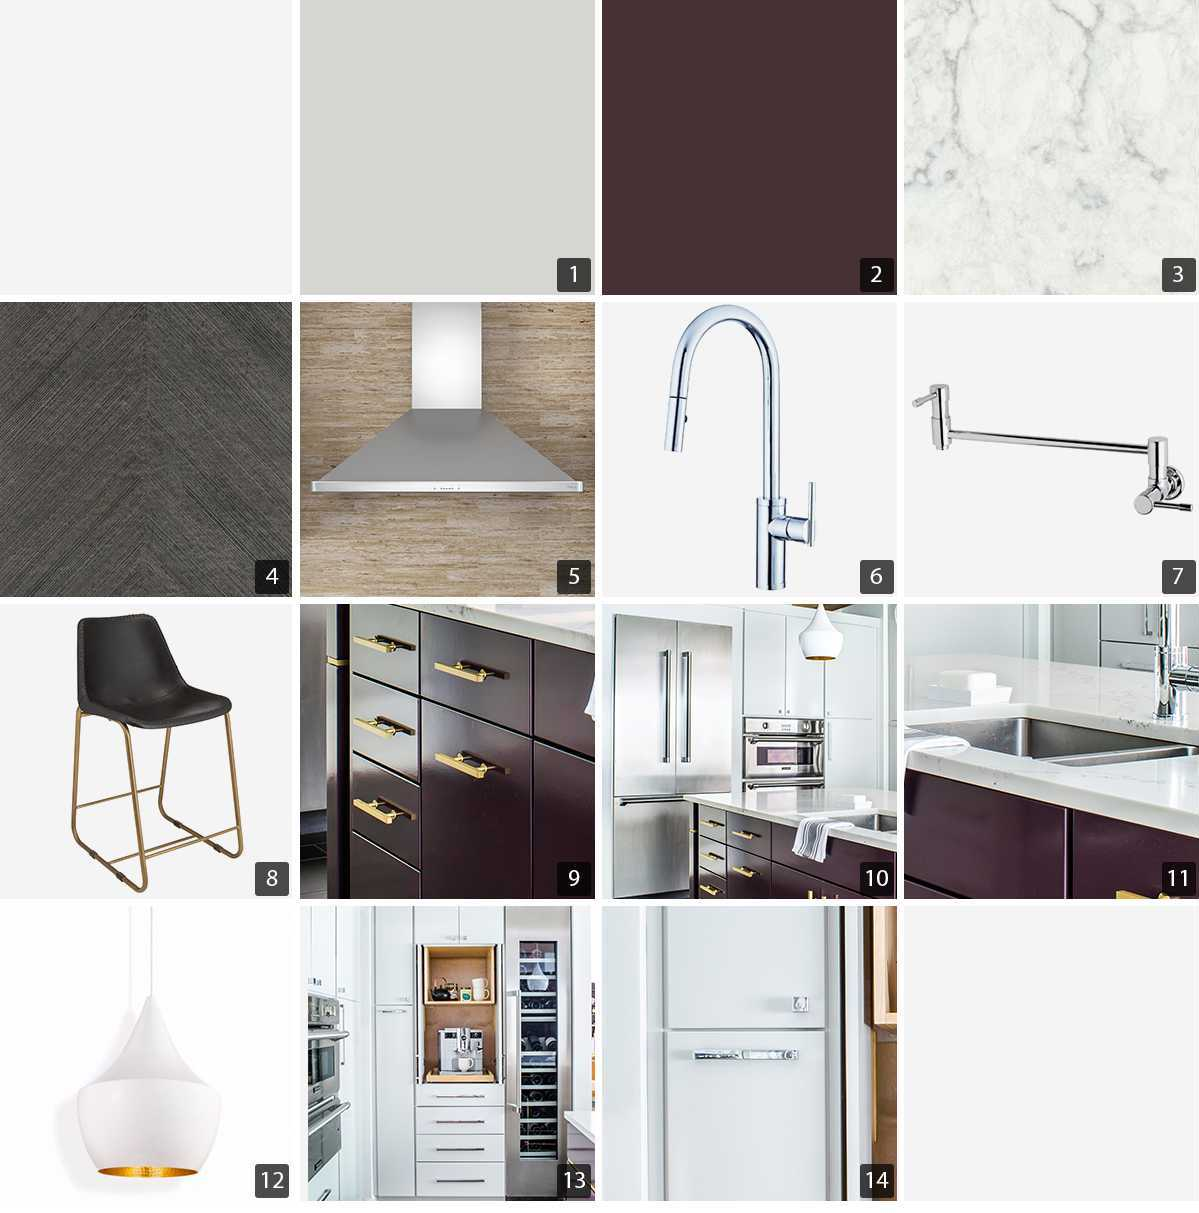 Collage of kitchen products including paint chips, hardware, and stainless steel appliances photo